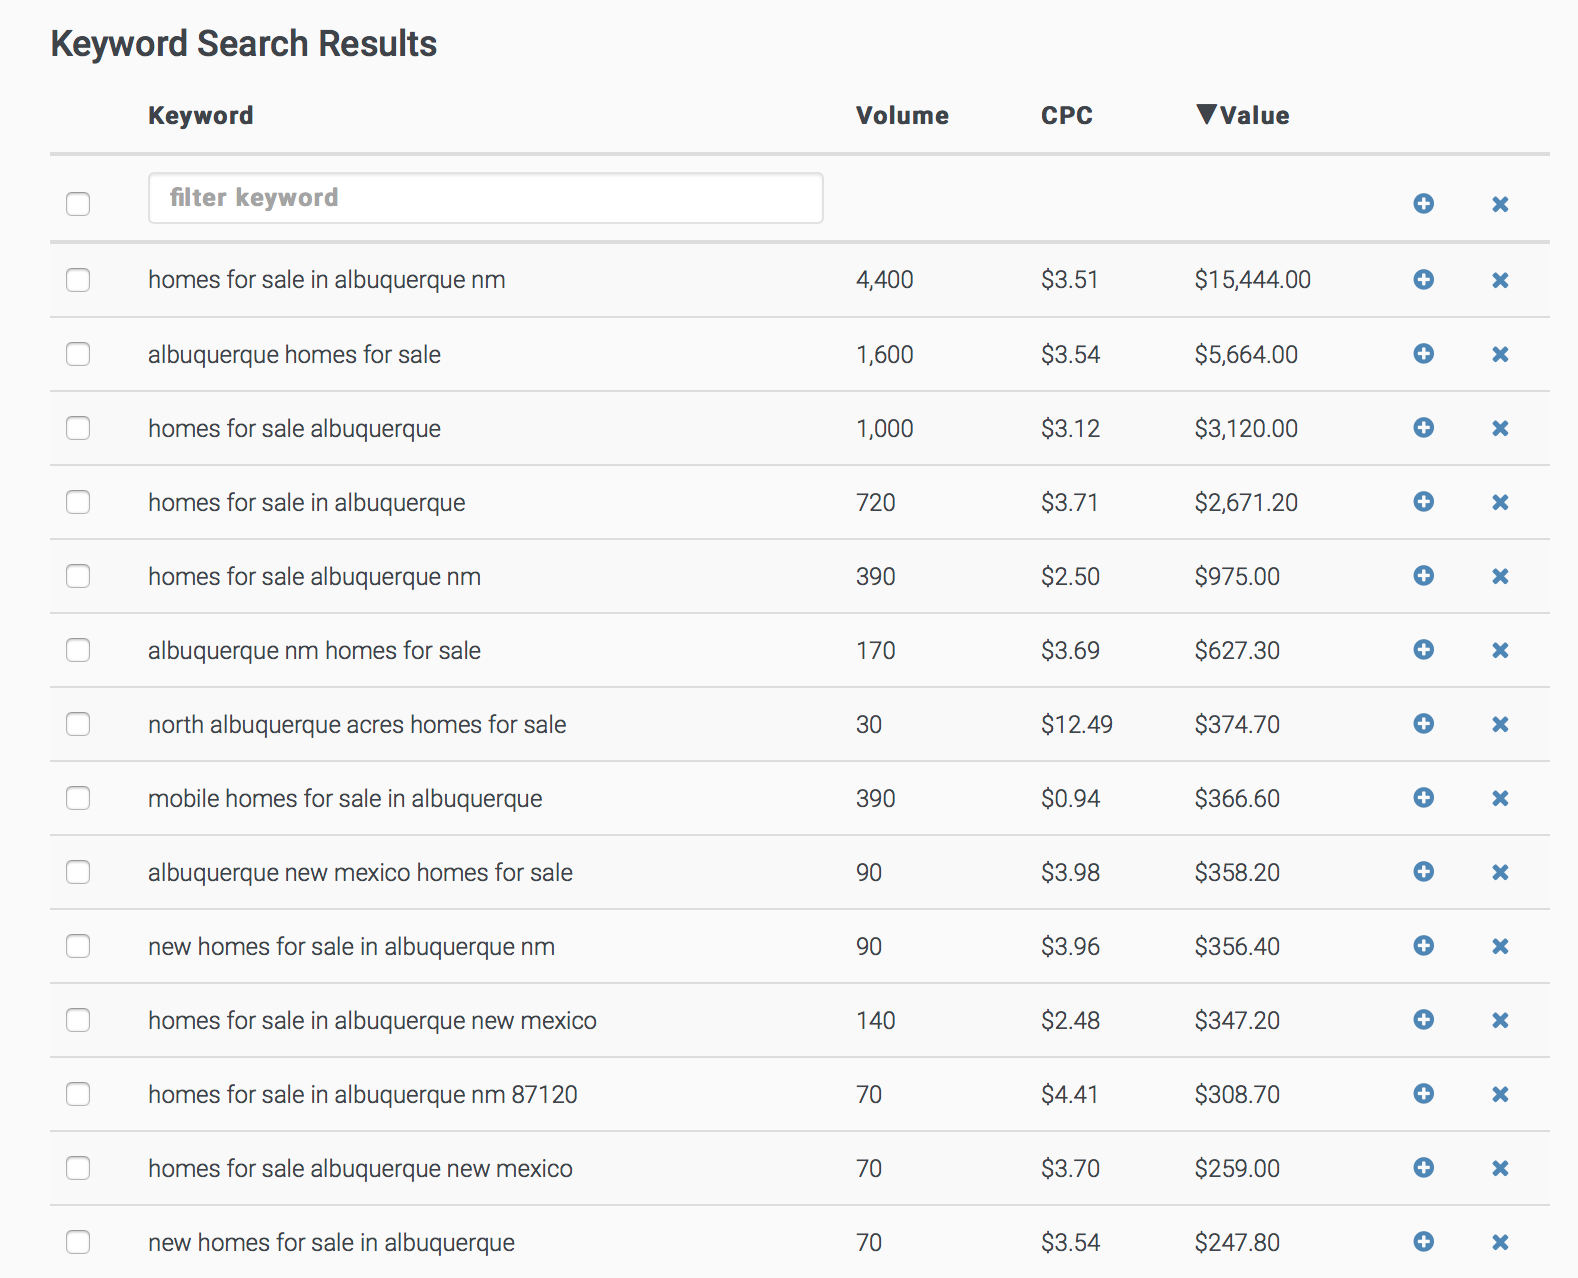 Free_Google_Keyword_Research_Tool___SERPS_com.png